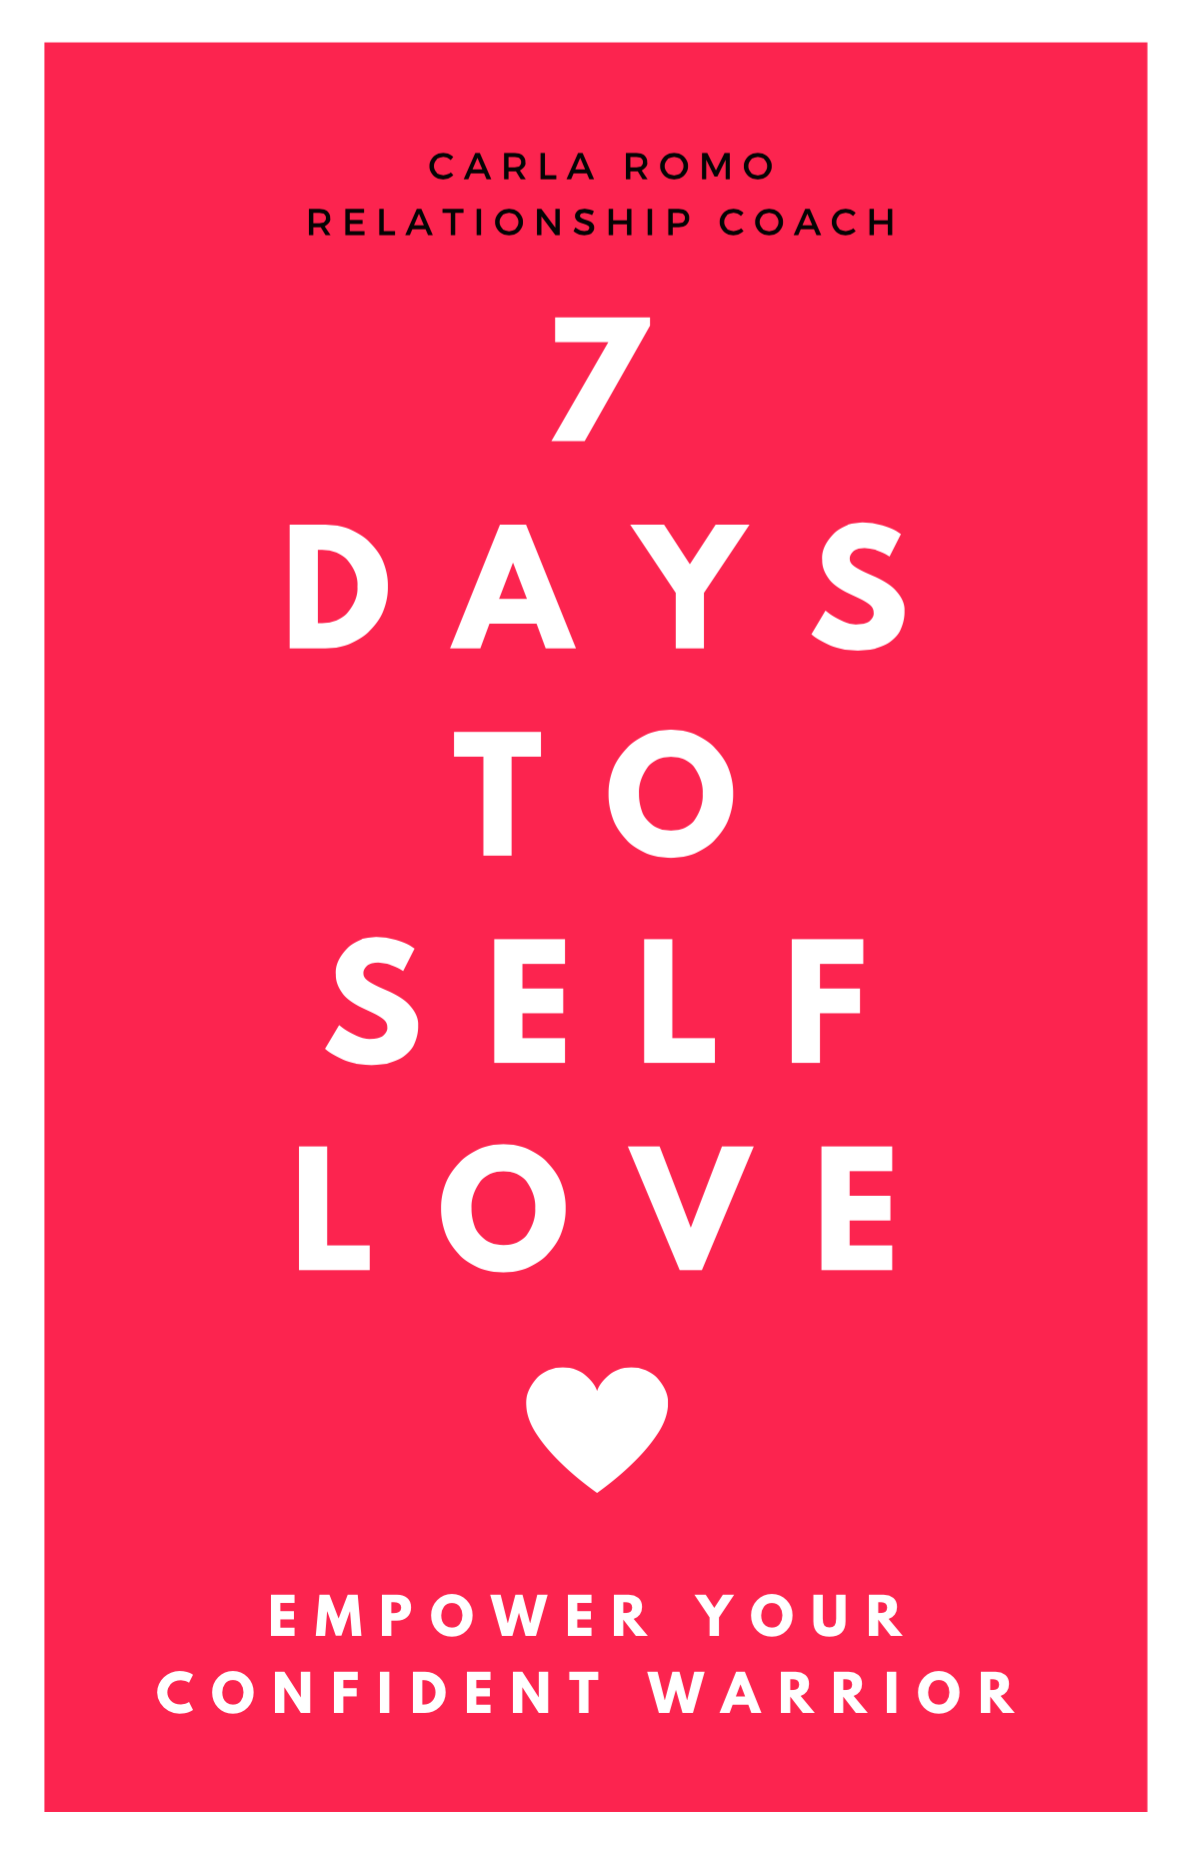 7 Days to Self Love - Carla Romo - Dating and Relationship Coach / Speaker